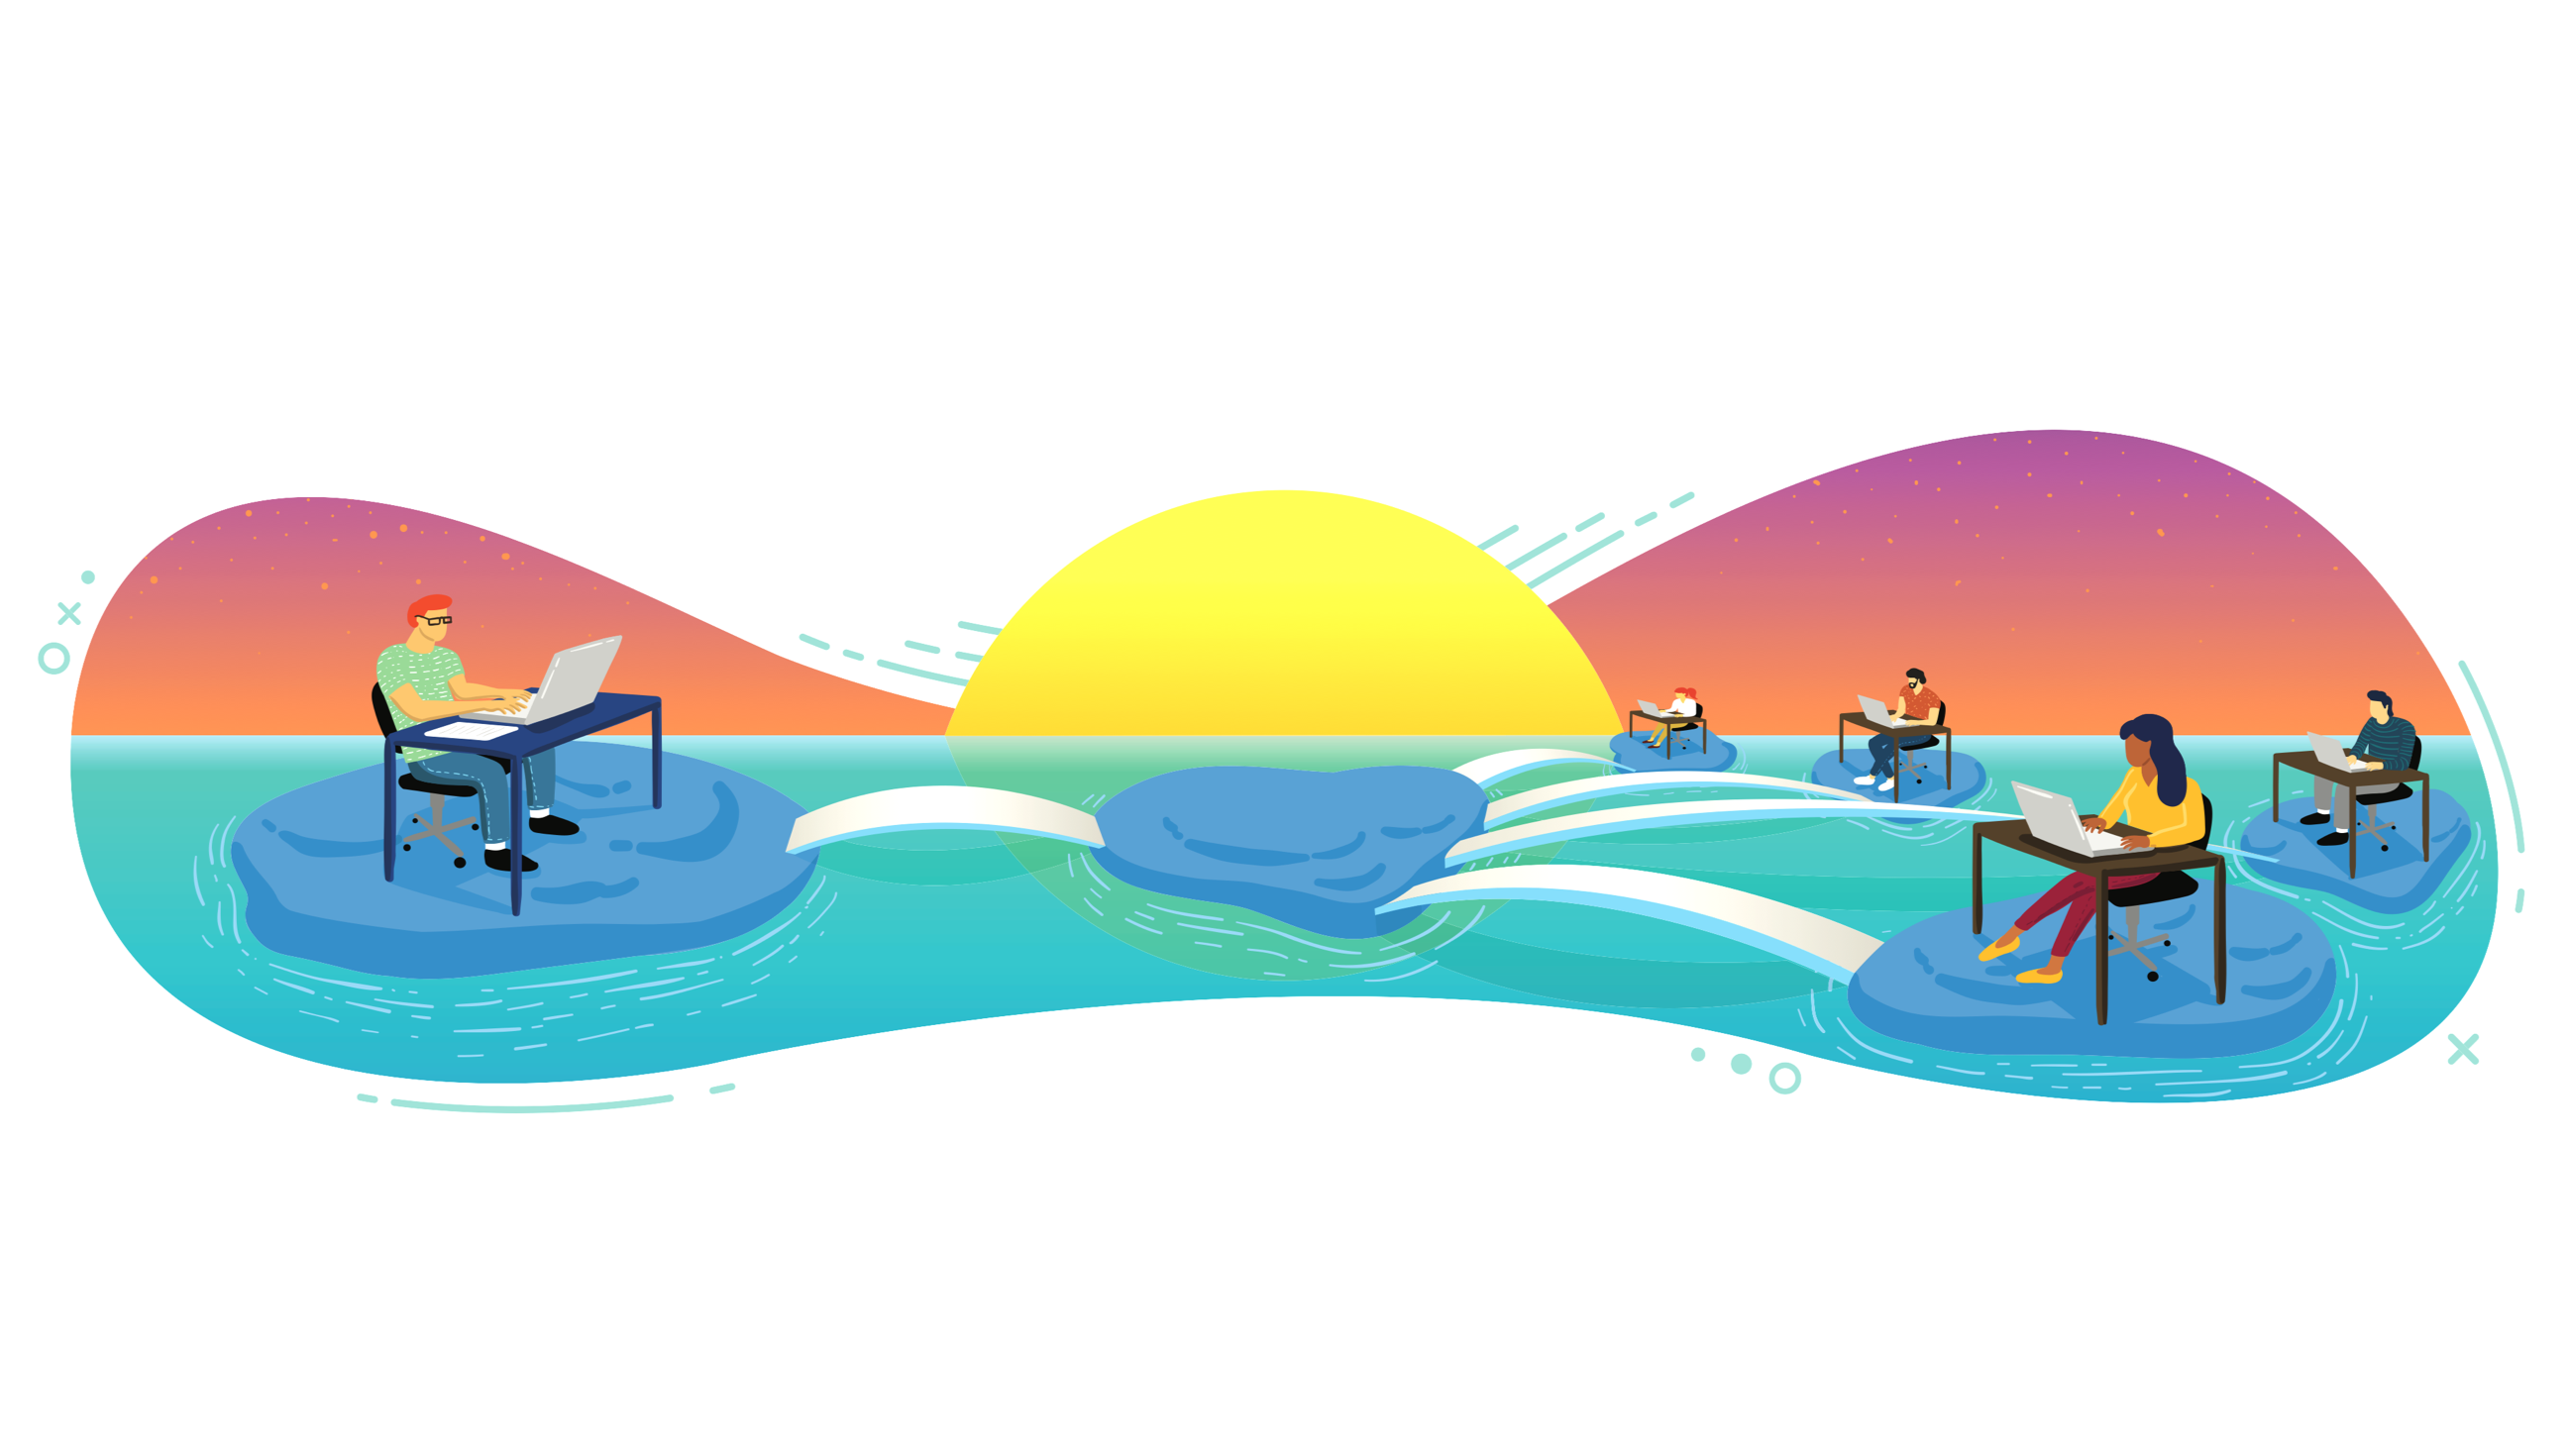 Illustration of IT and employees working happily on connected islands in the ocean, with the sun setting behind.